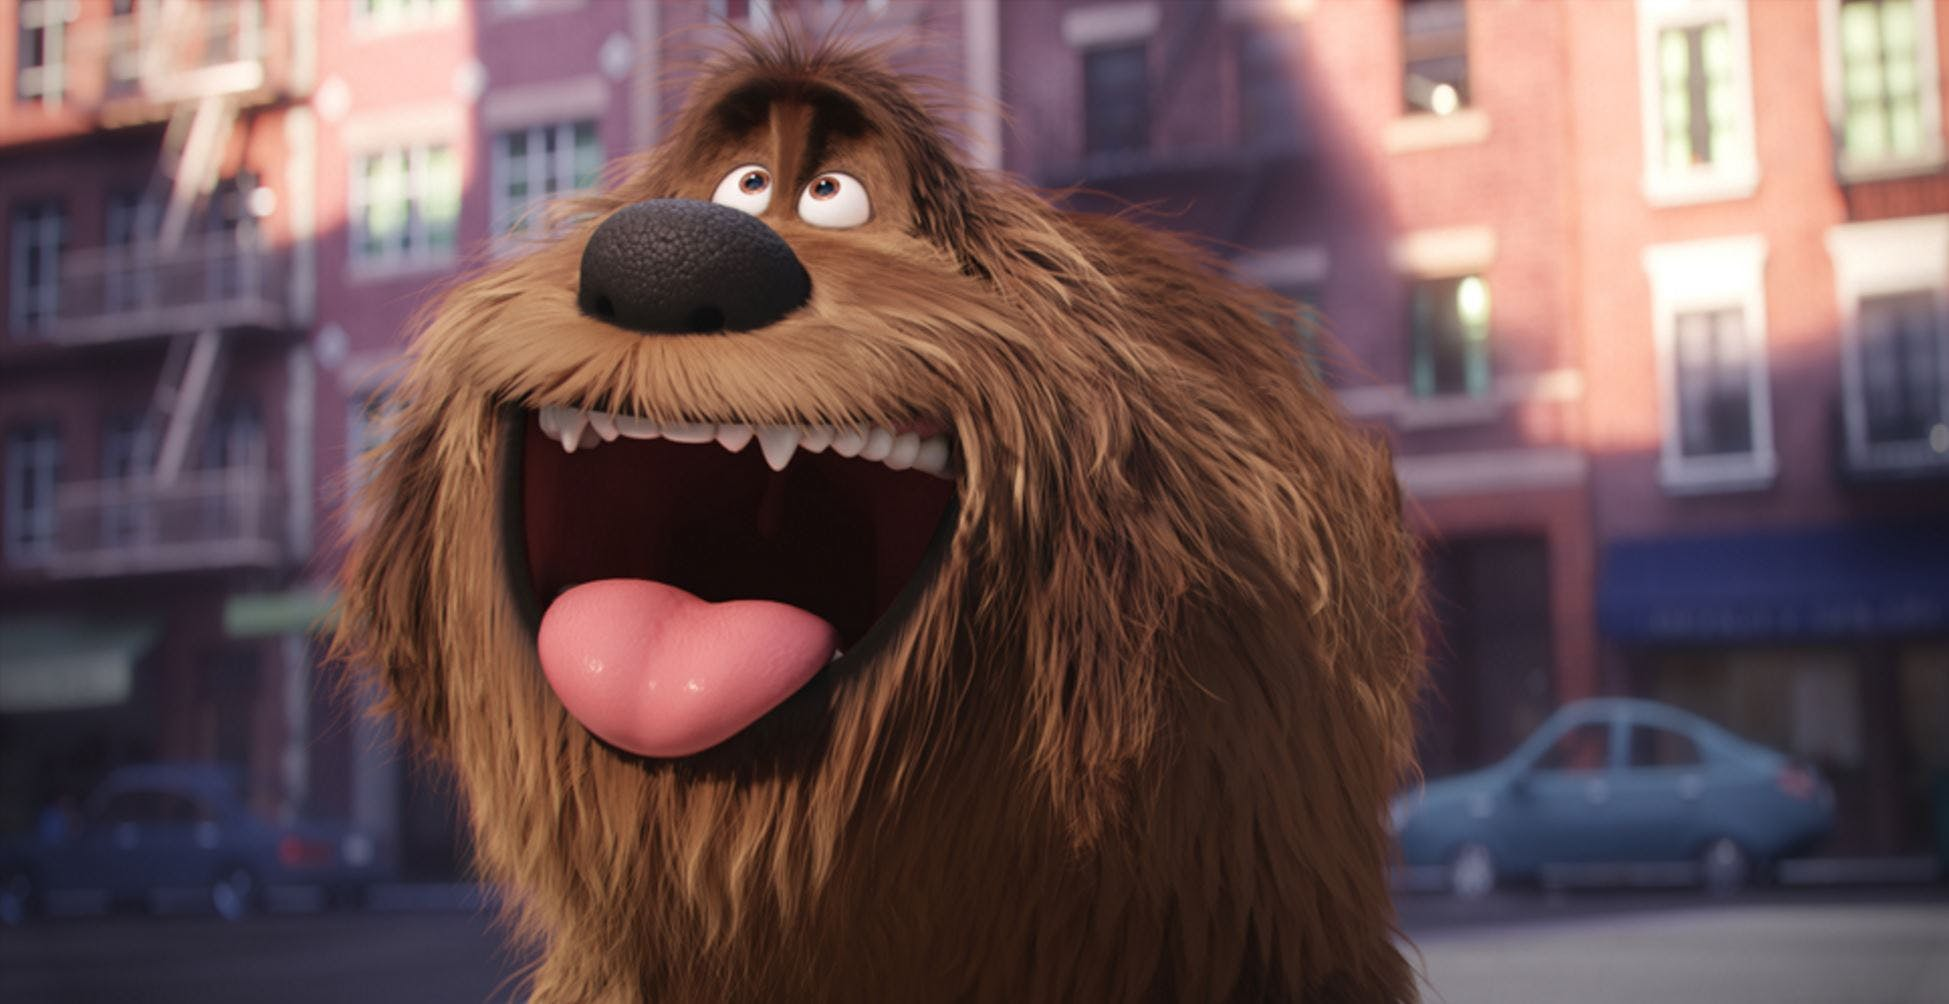 Duke from The Secret Life of Pets